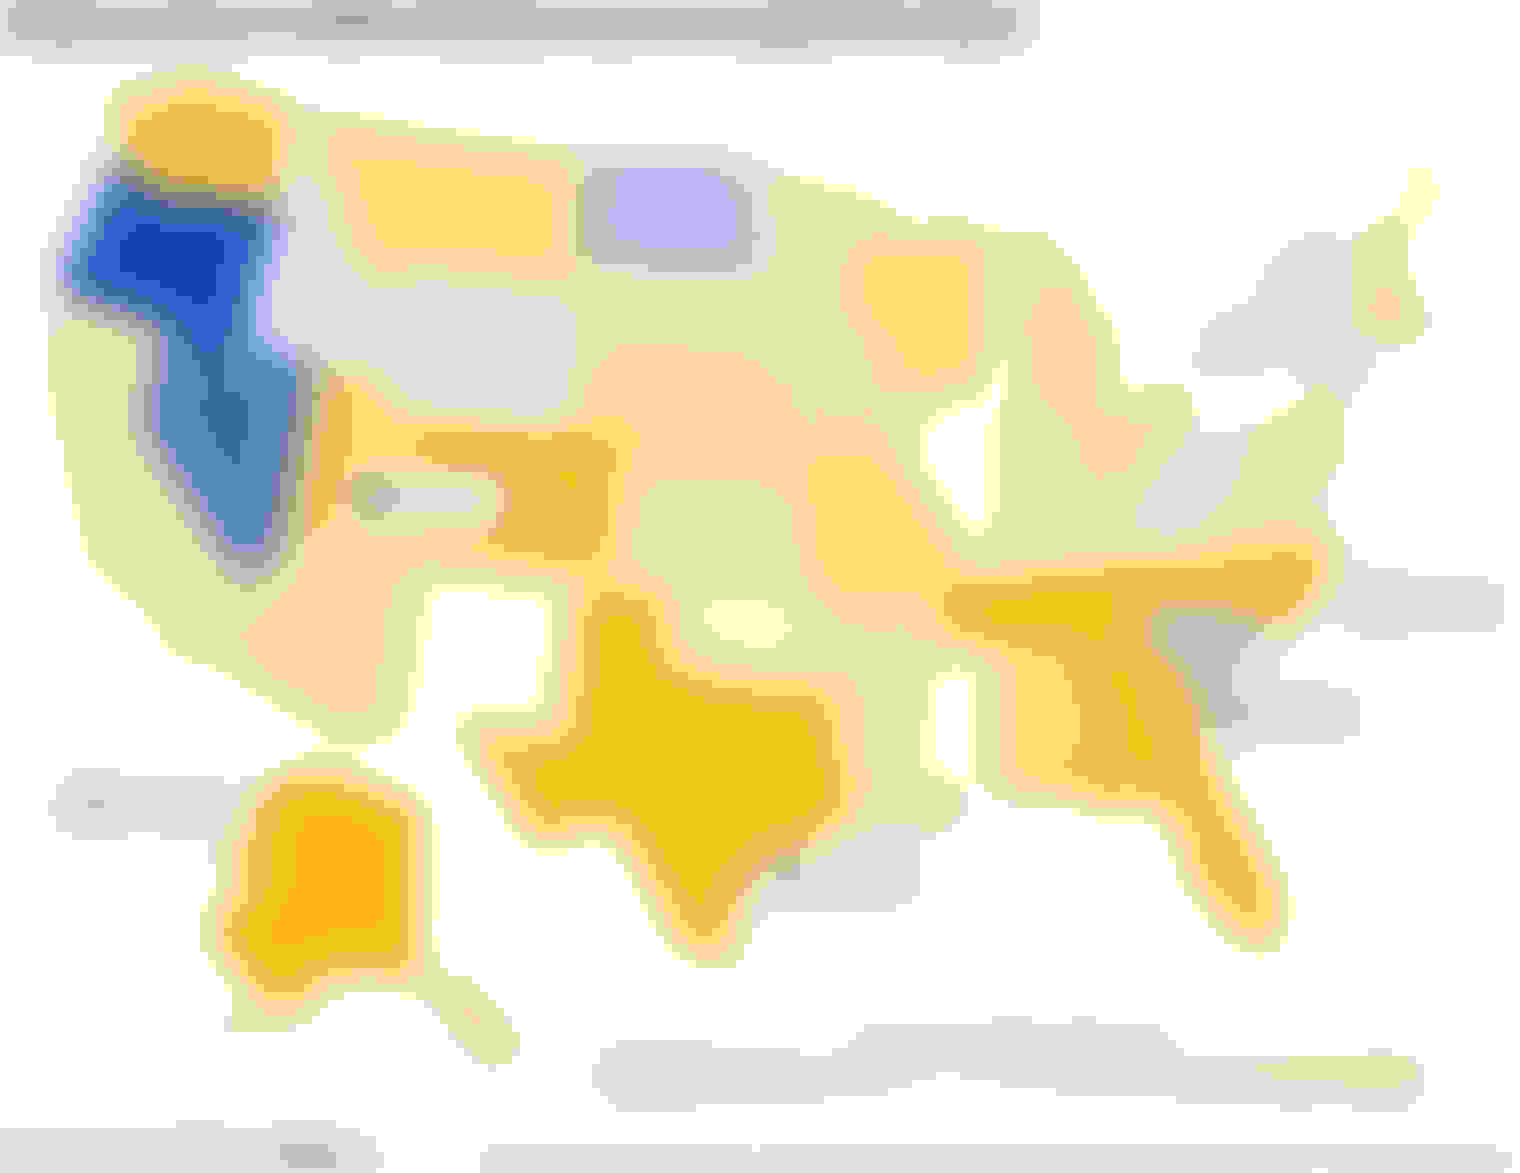 Heat map of the states with the biggest increase in traffic density